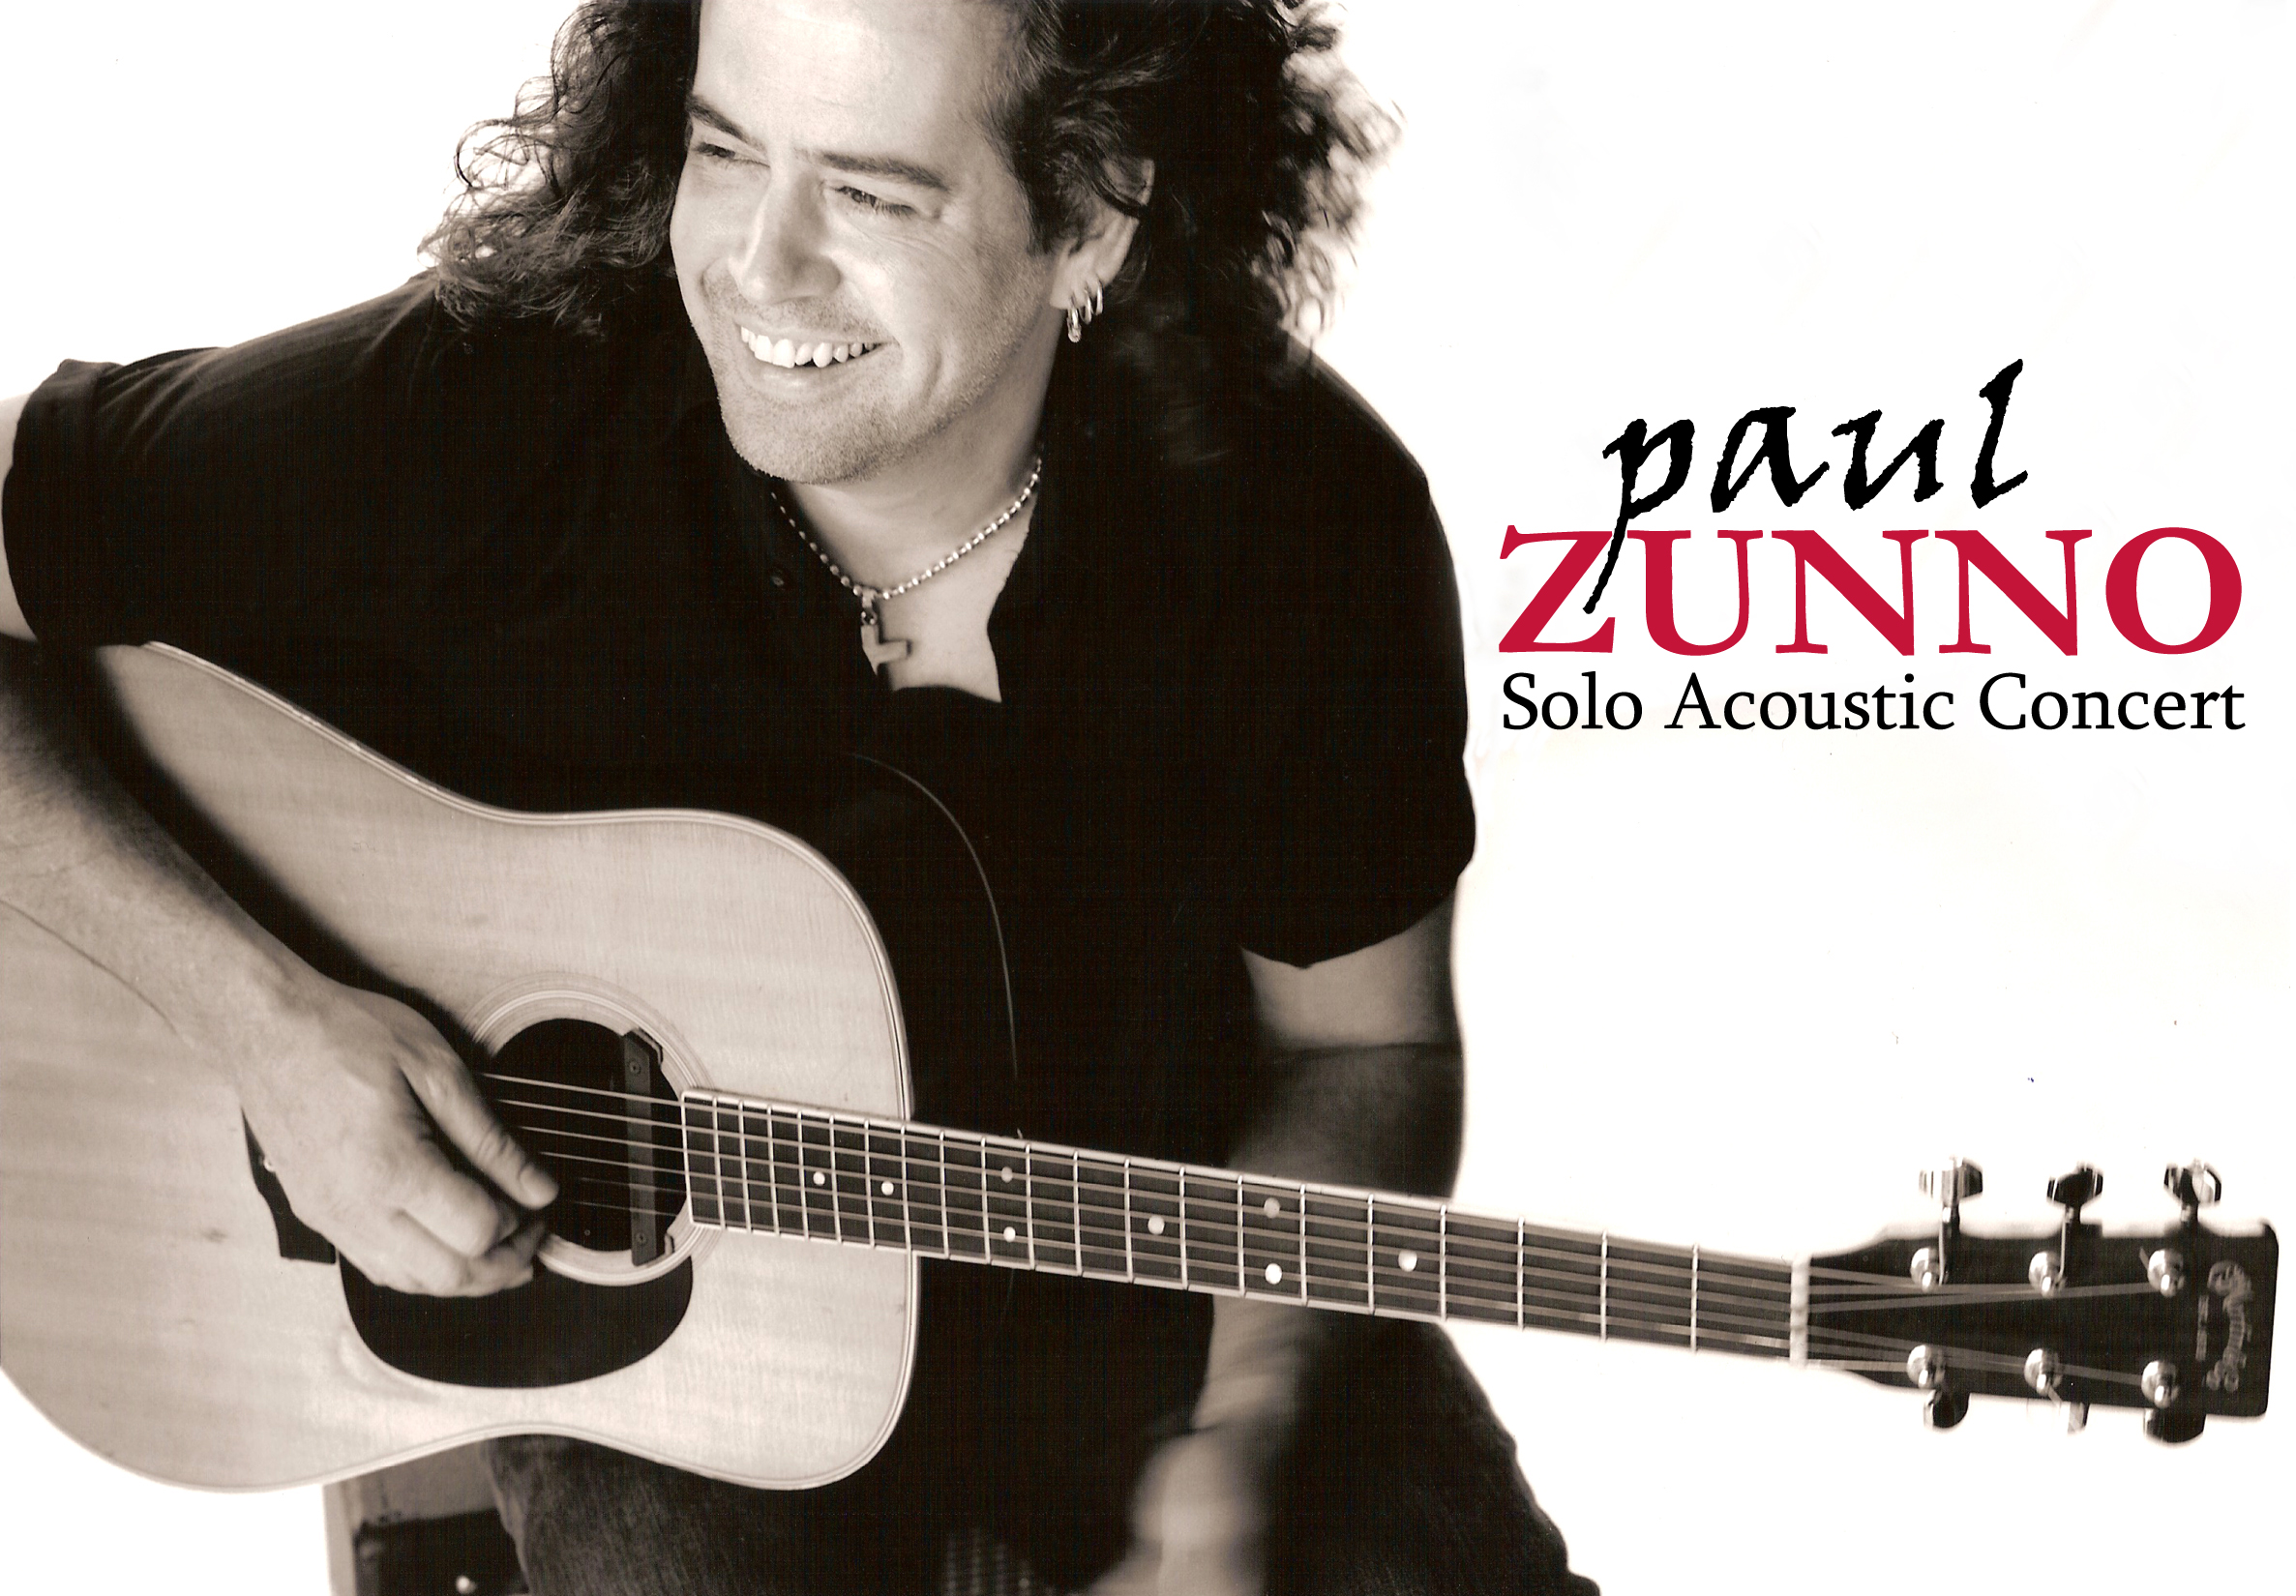 Paul zunno hosts solo acoustic concert 12 26 for 130 william street 5th floor